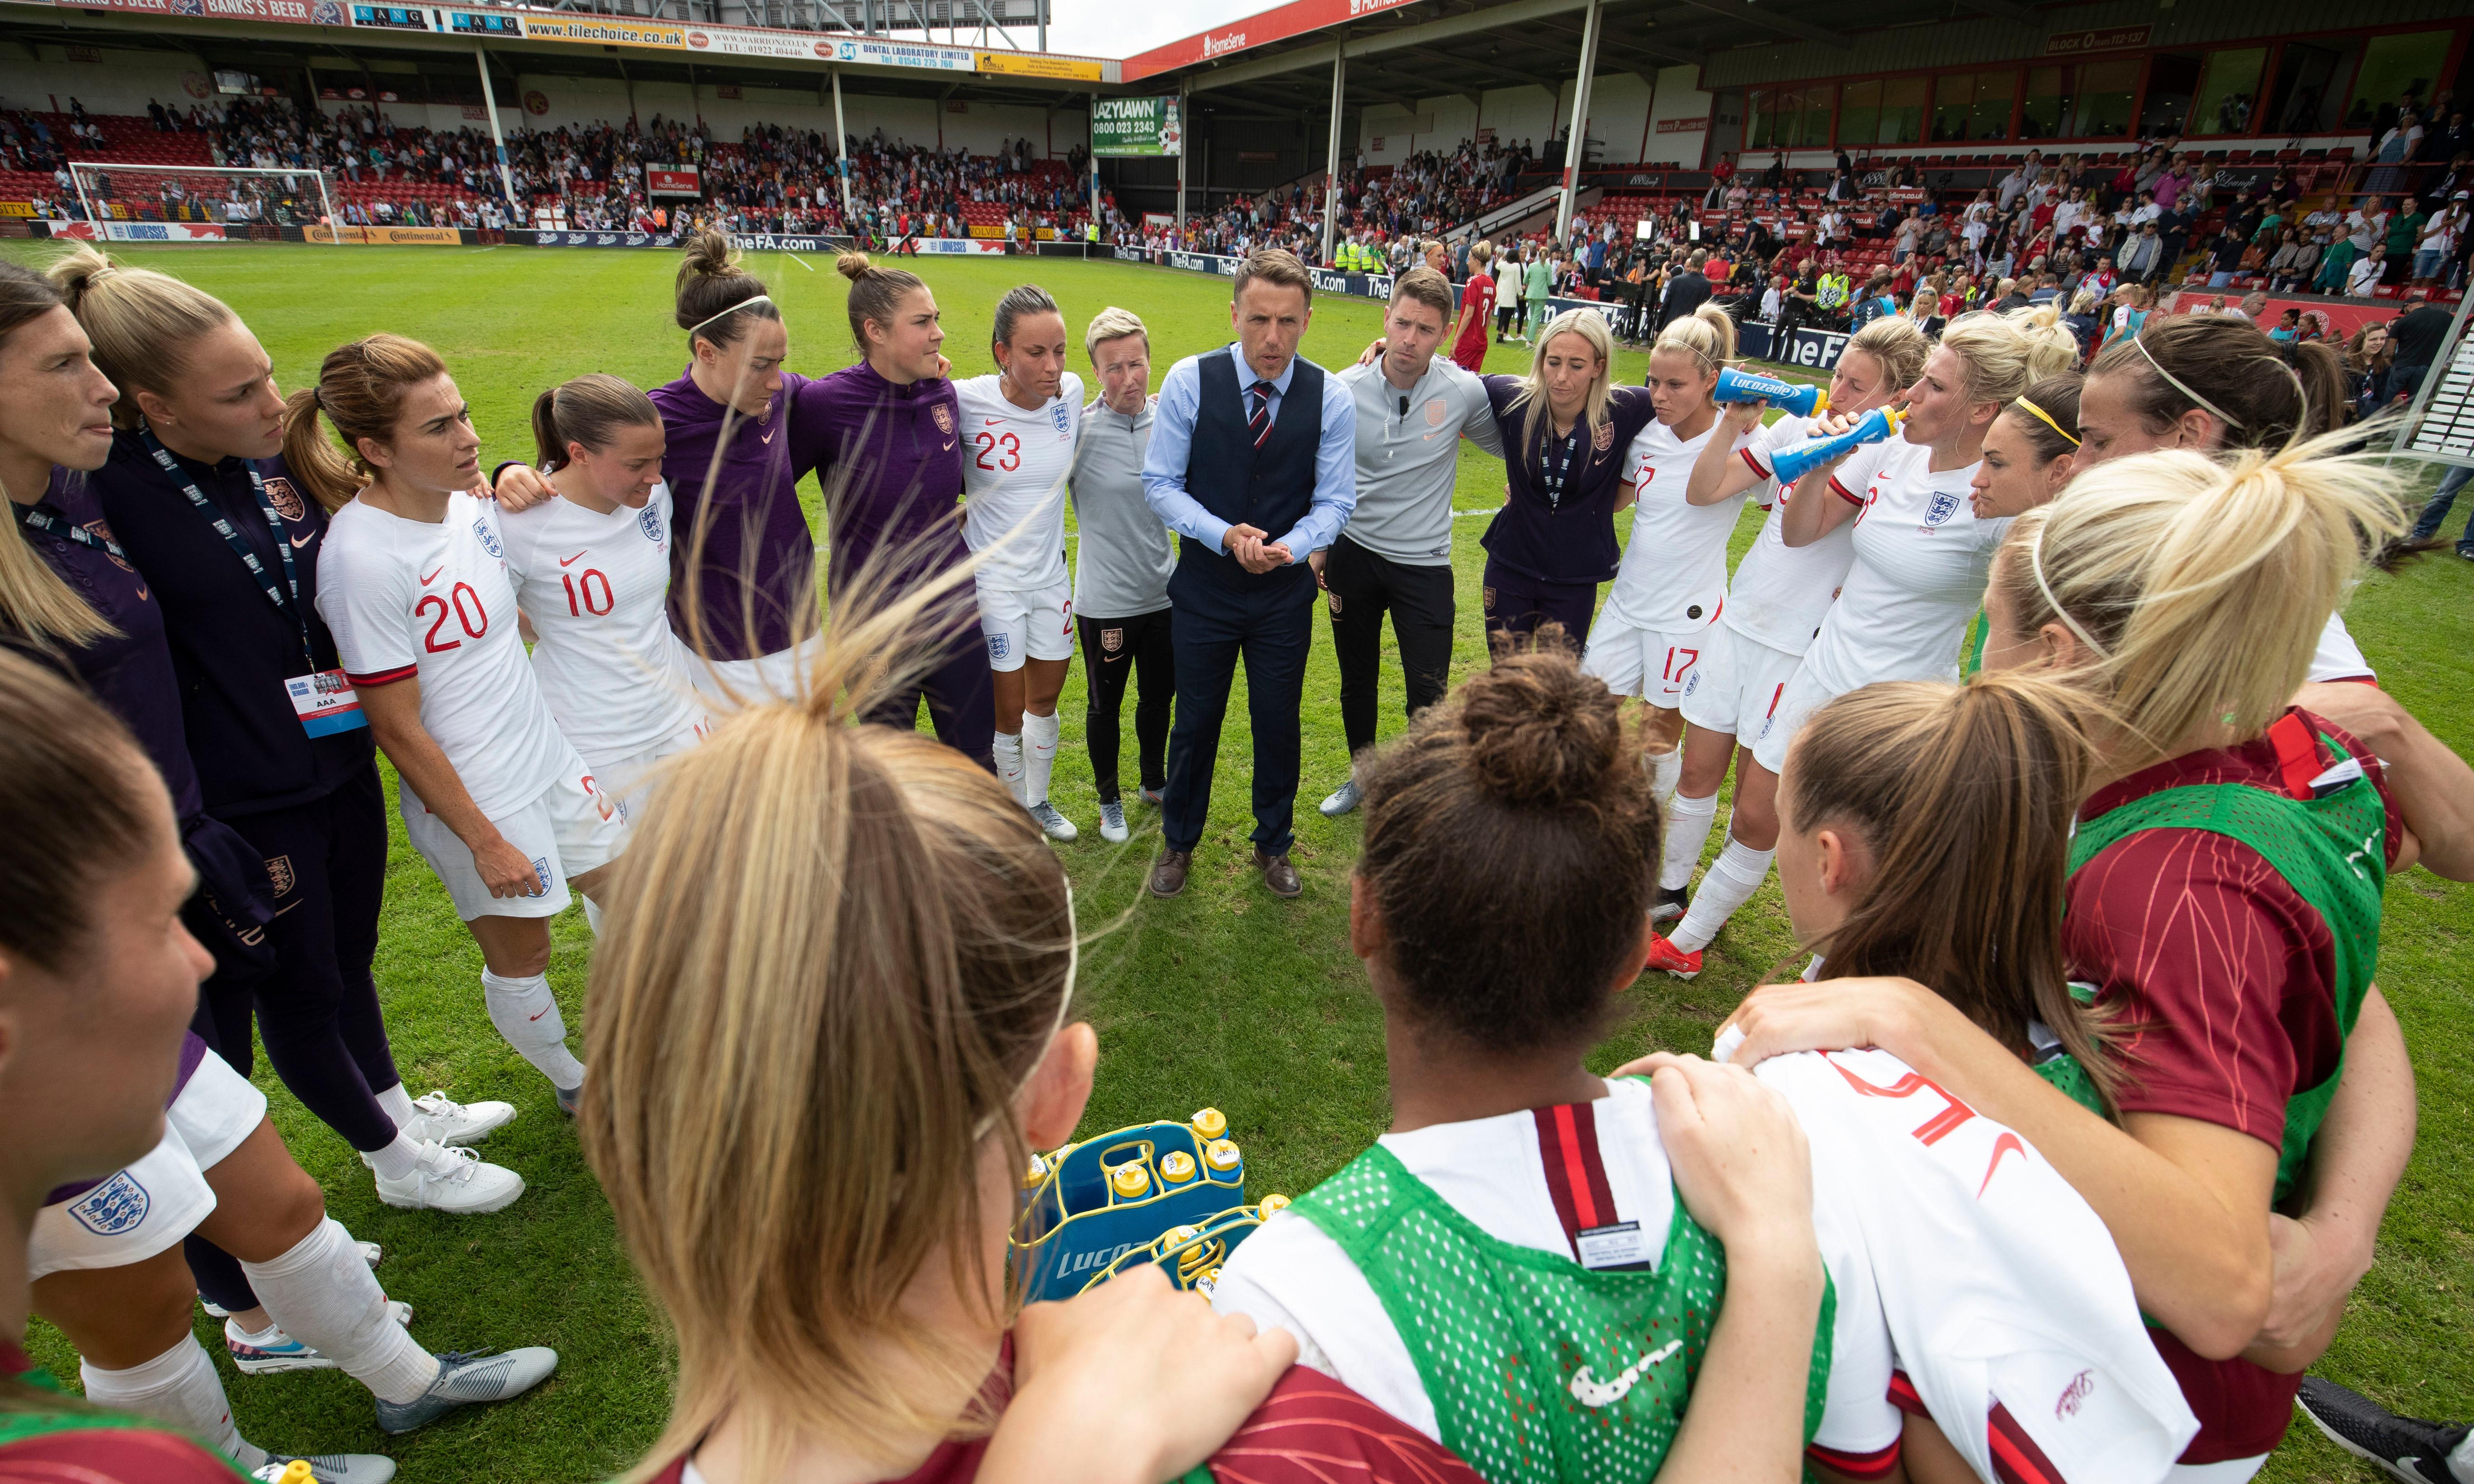 England 2-0 Denmark: five talking points from the World Cup warm-up